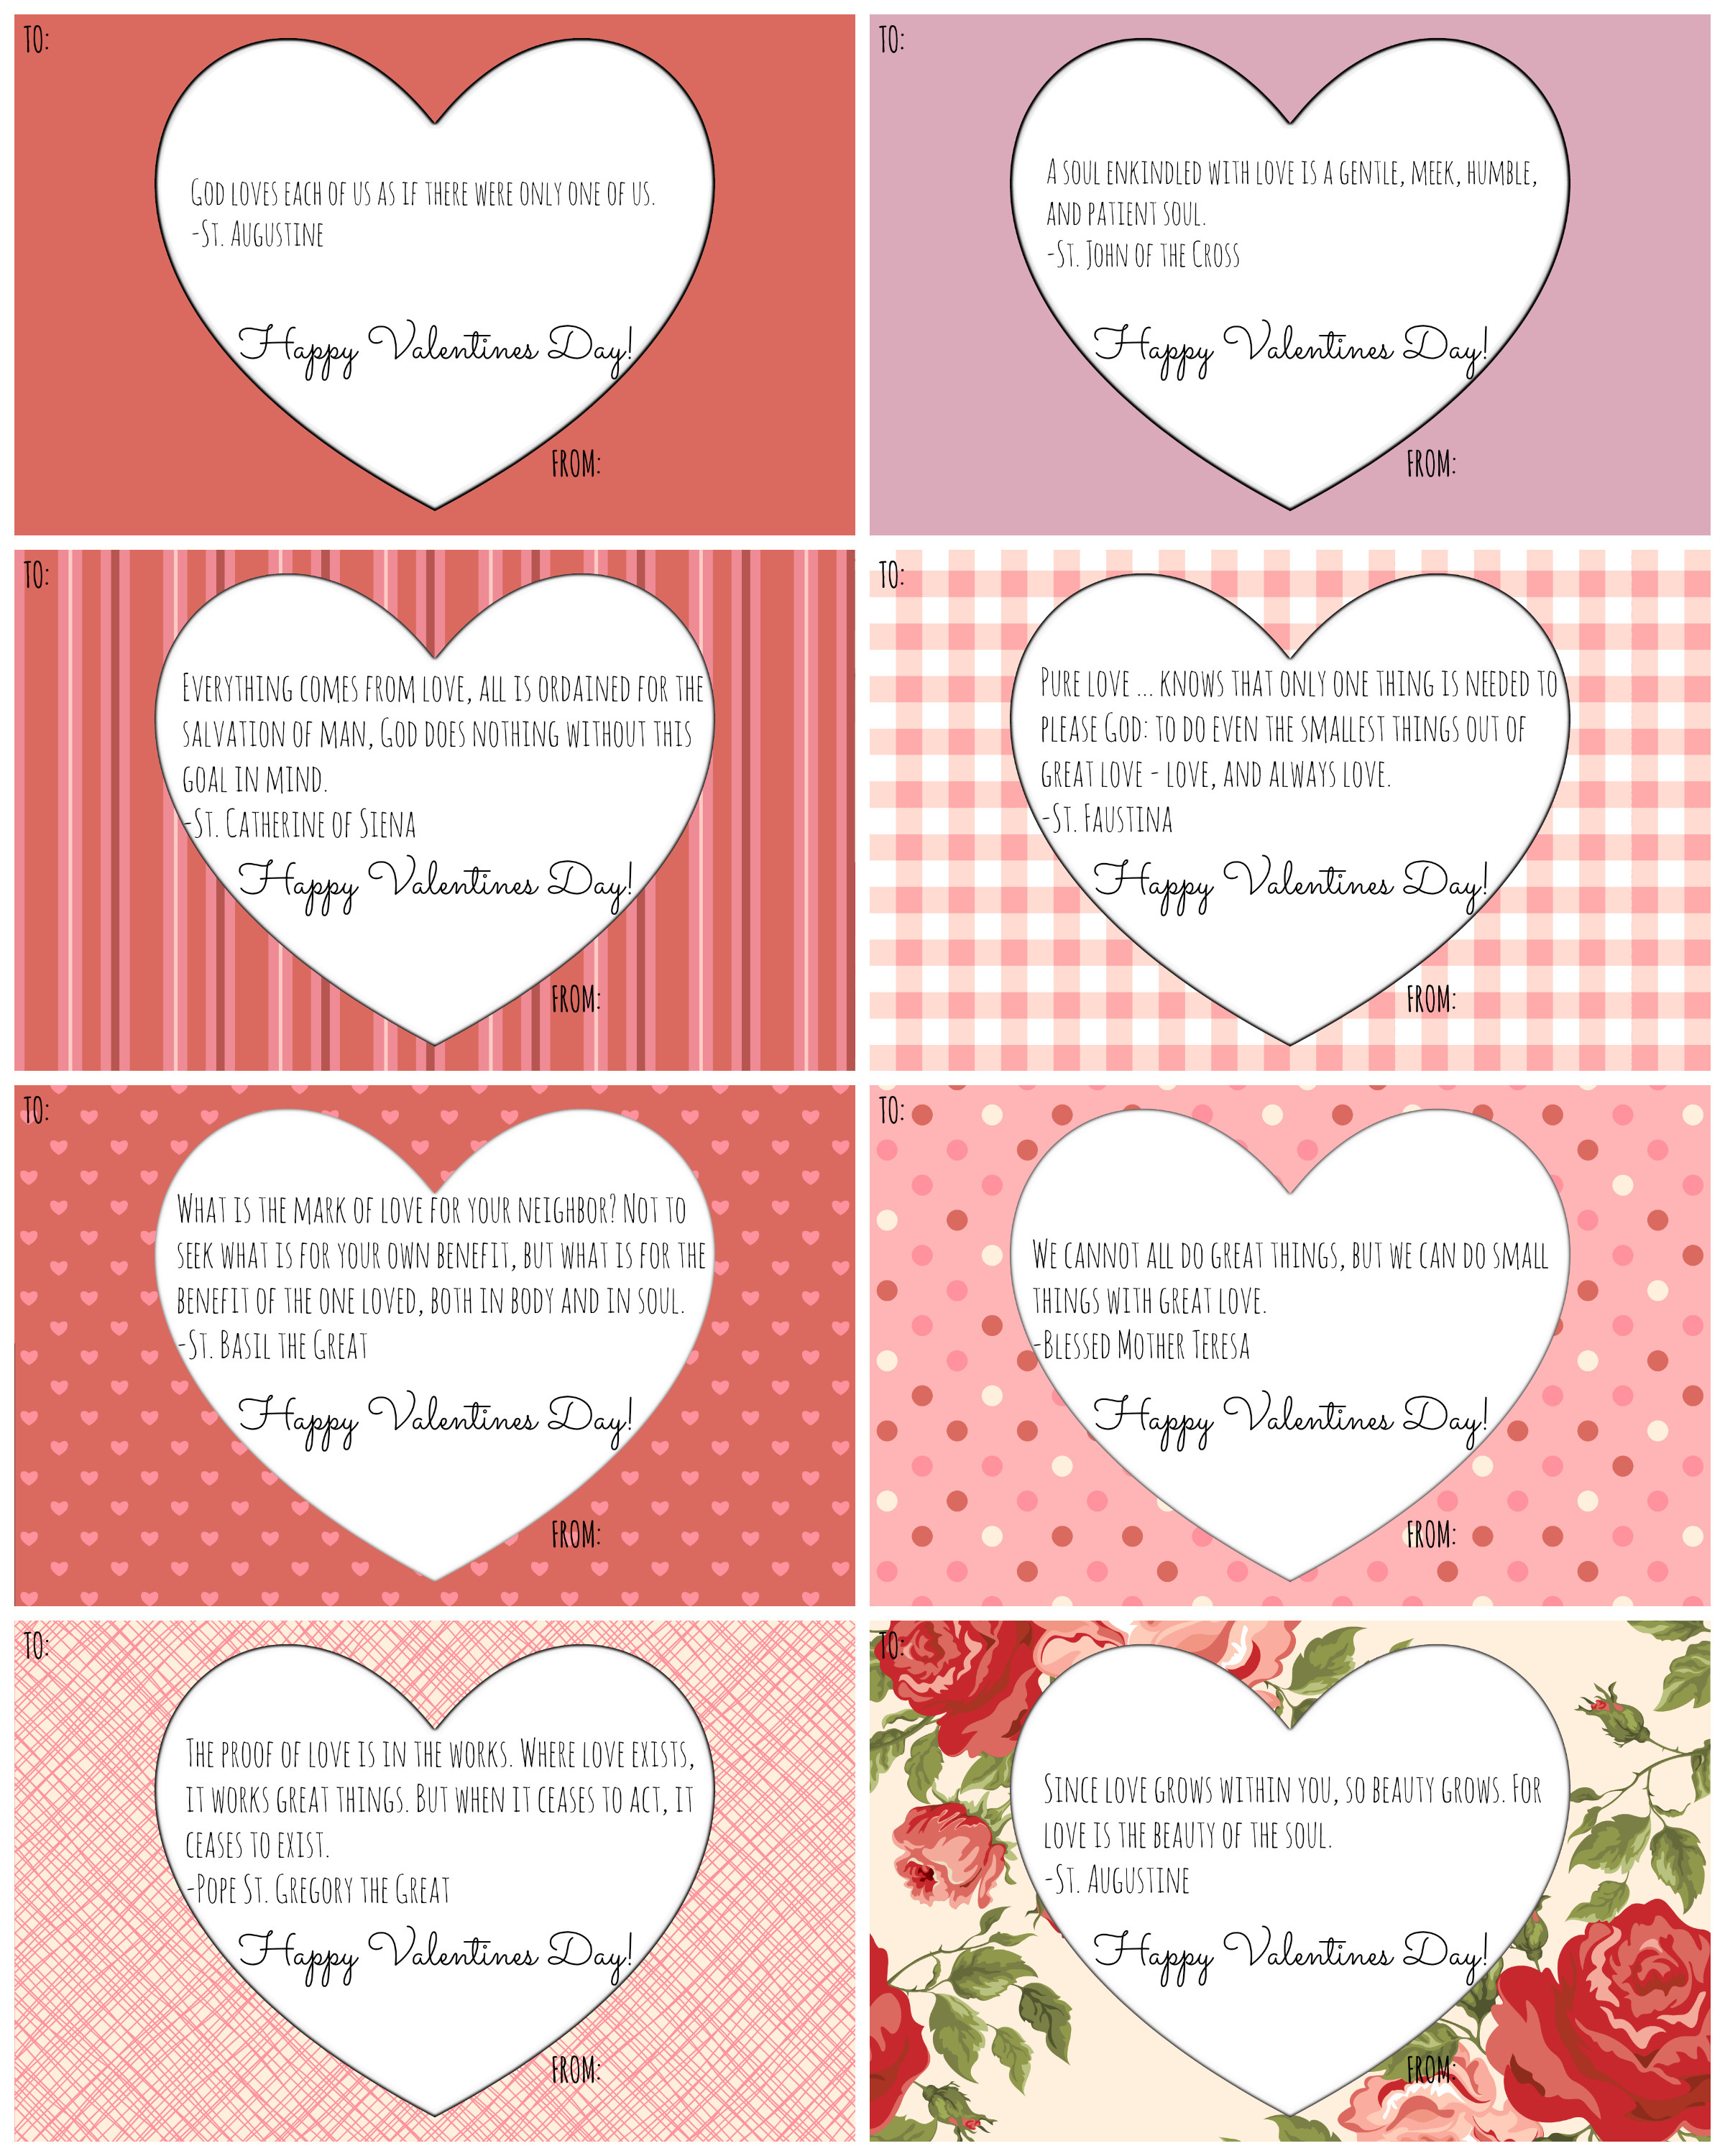 Catholic Valentine Cards: Free Printables! - California To Korea - Valentine Free Printable Cards